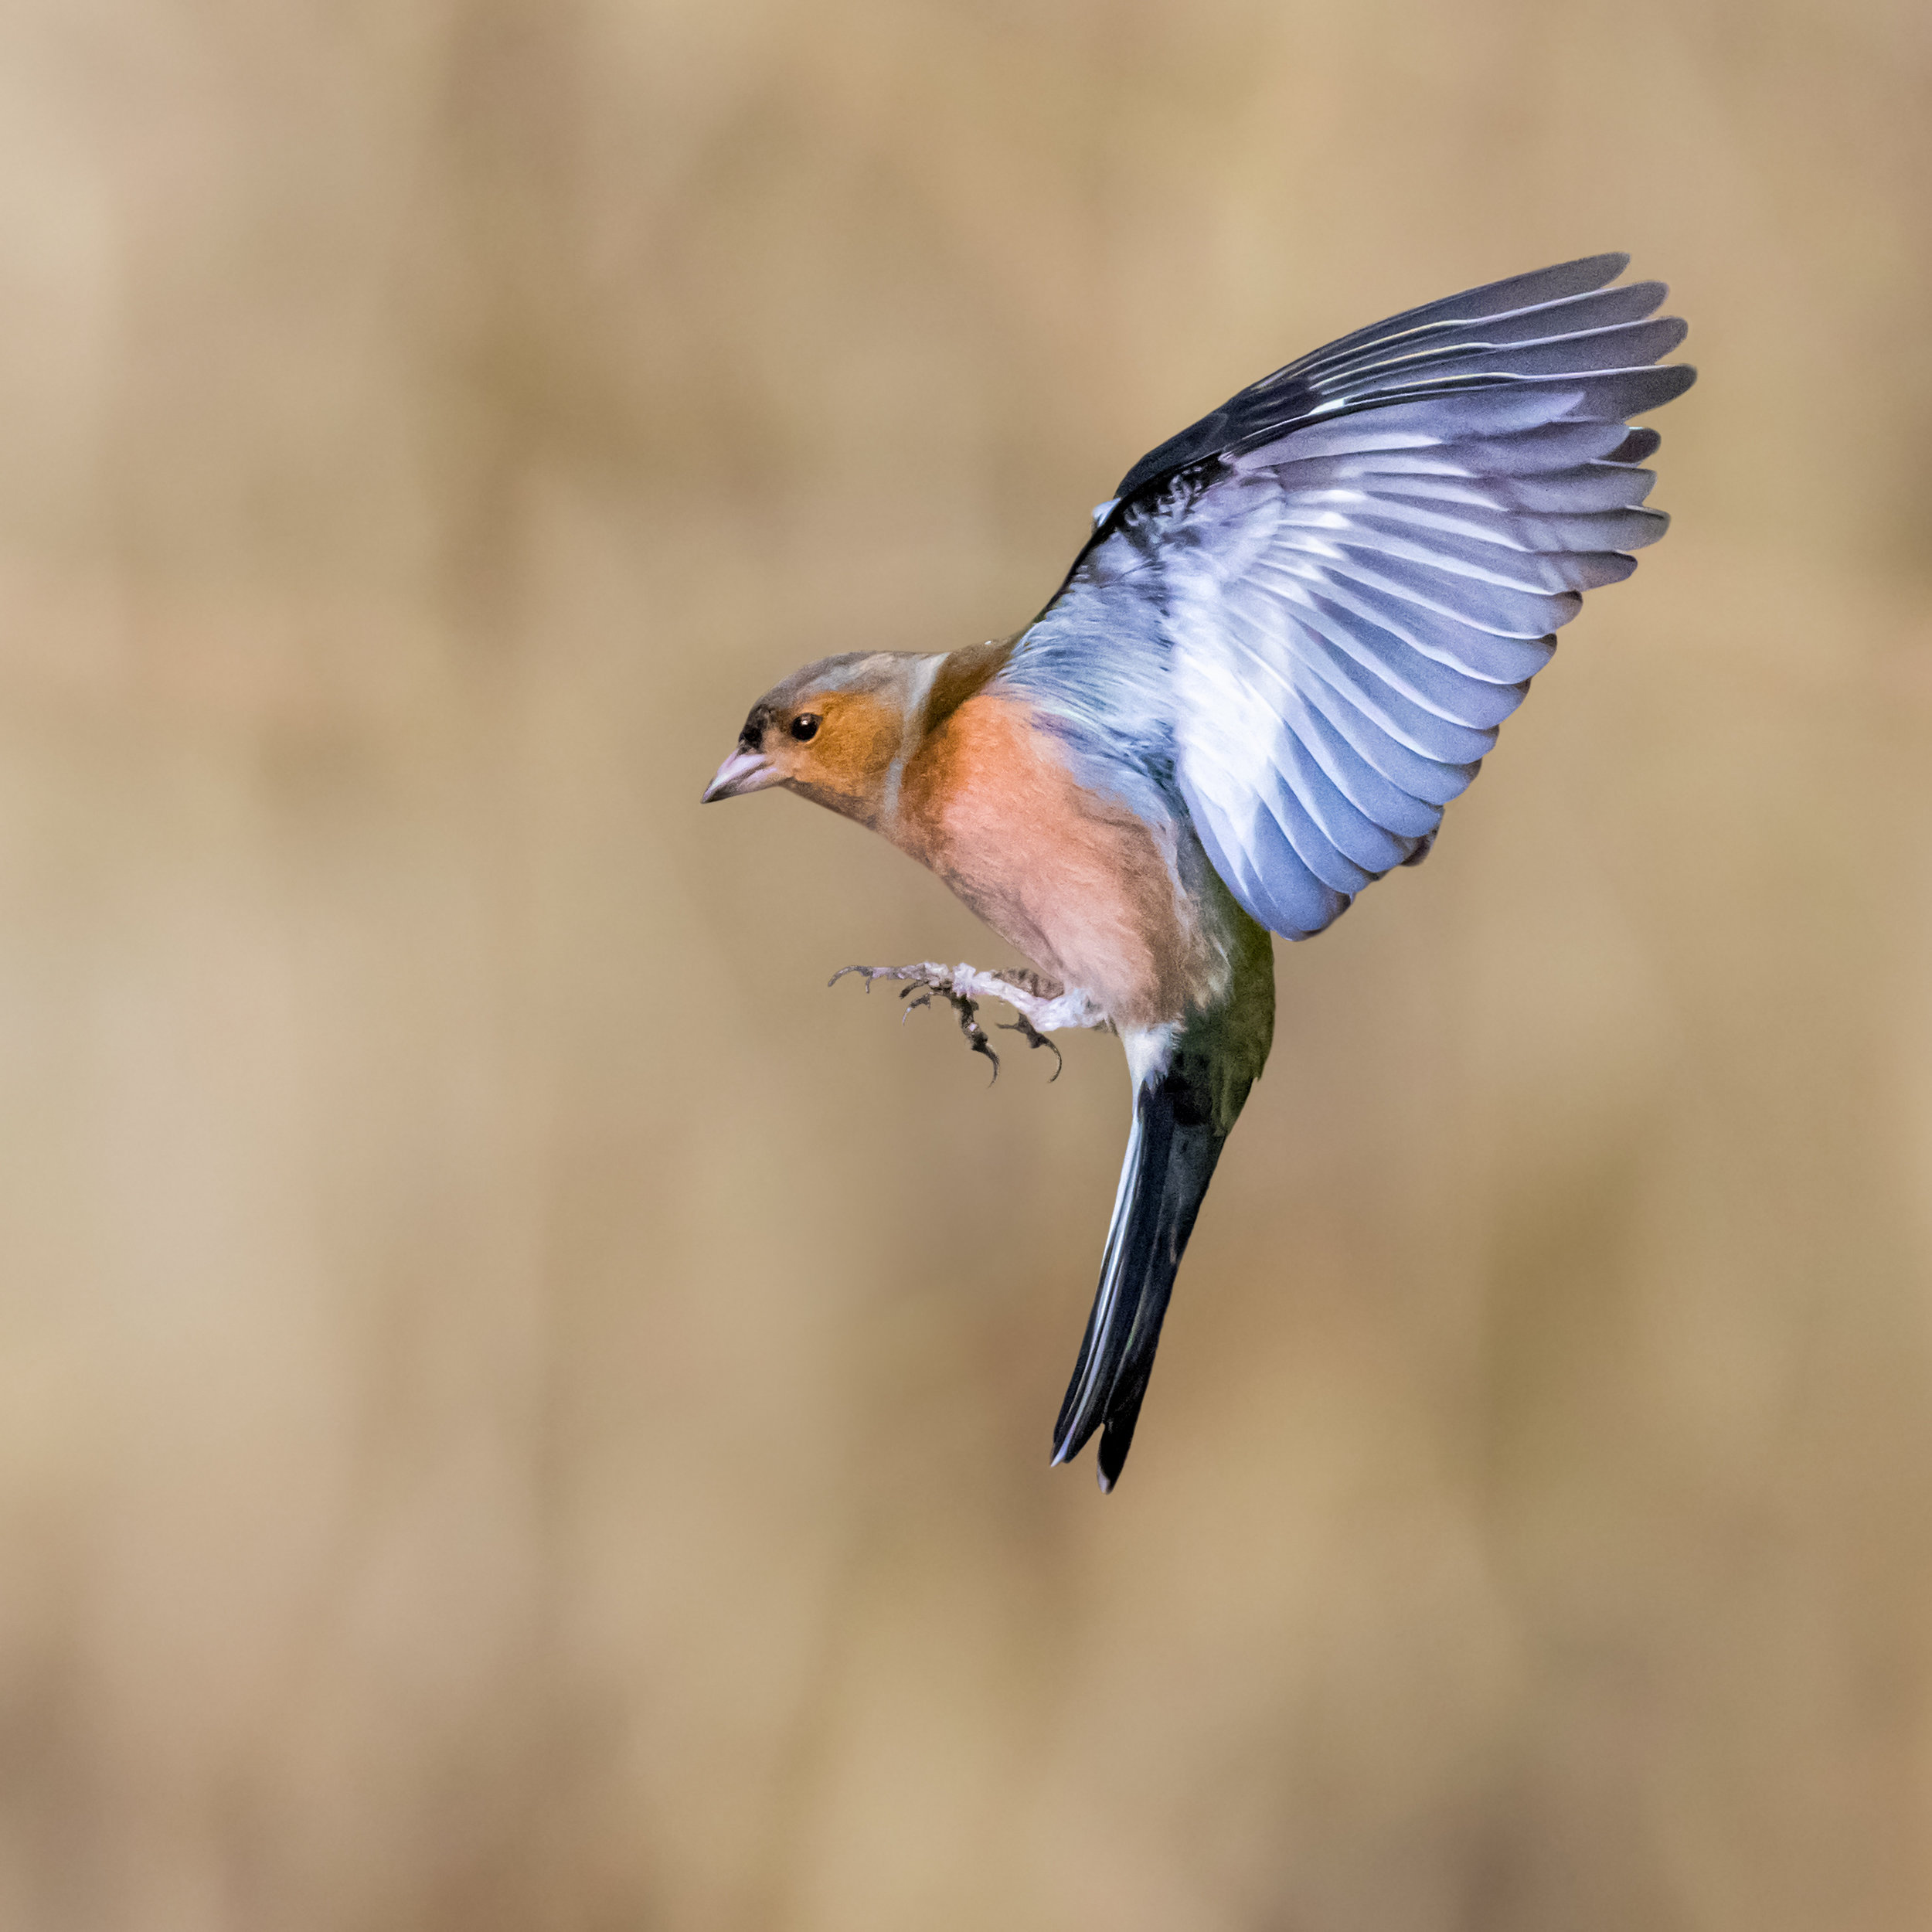 Chaffinch wings fully back